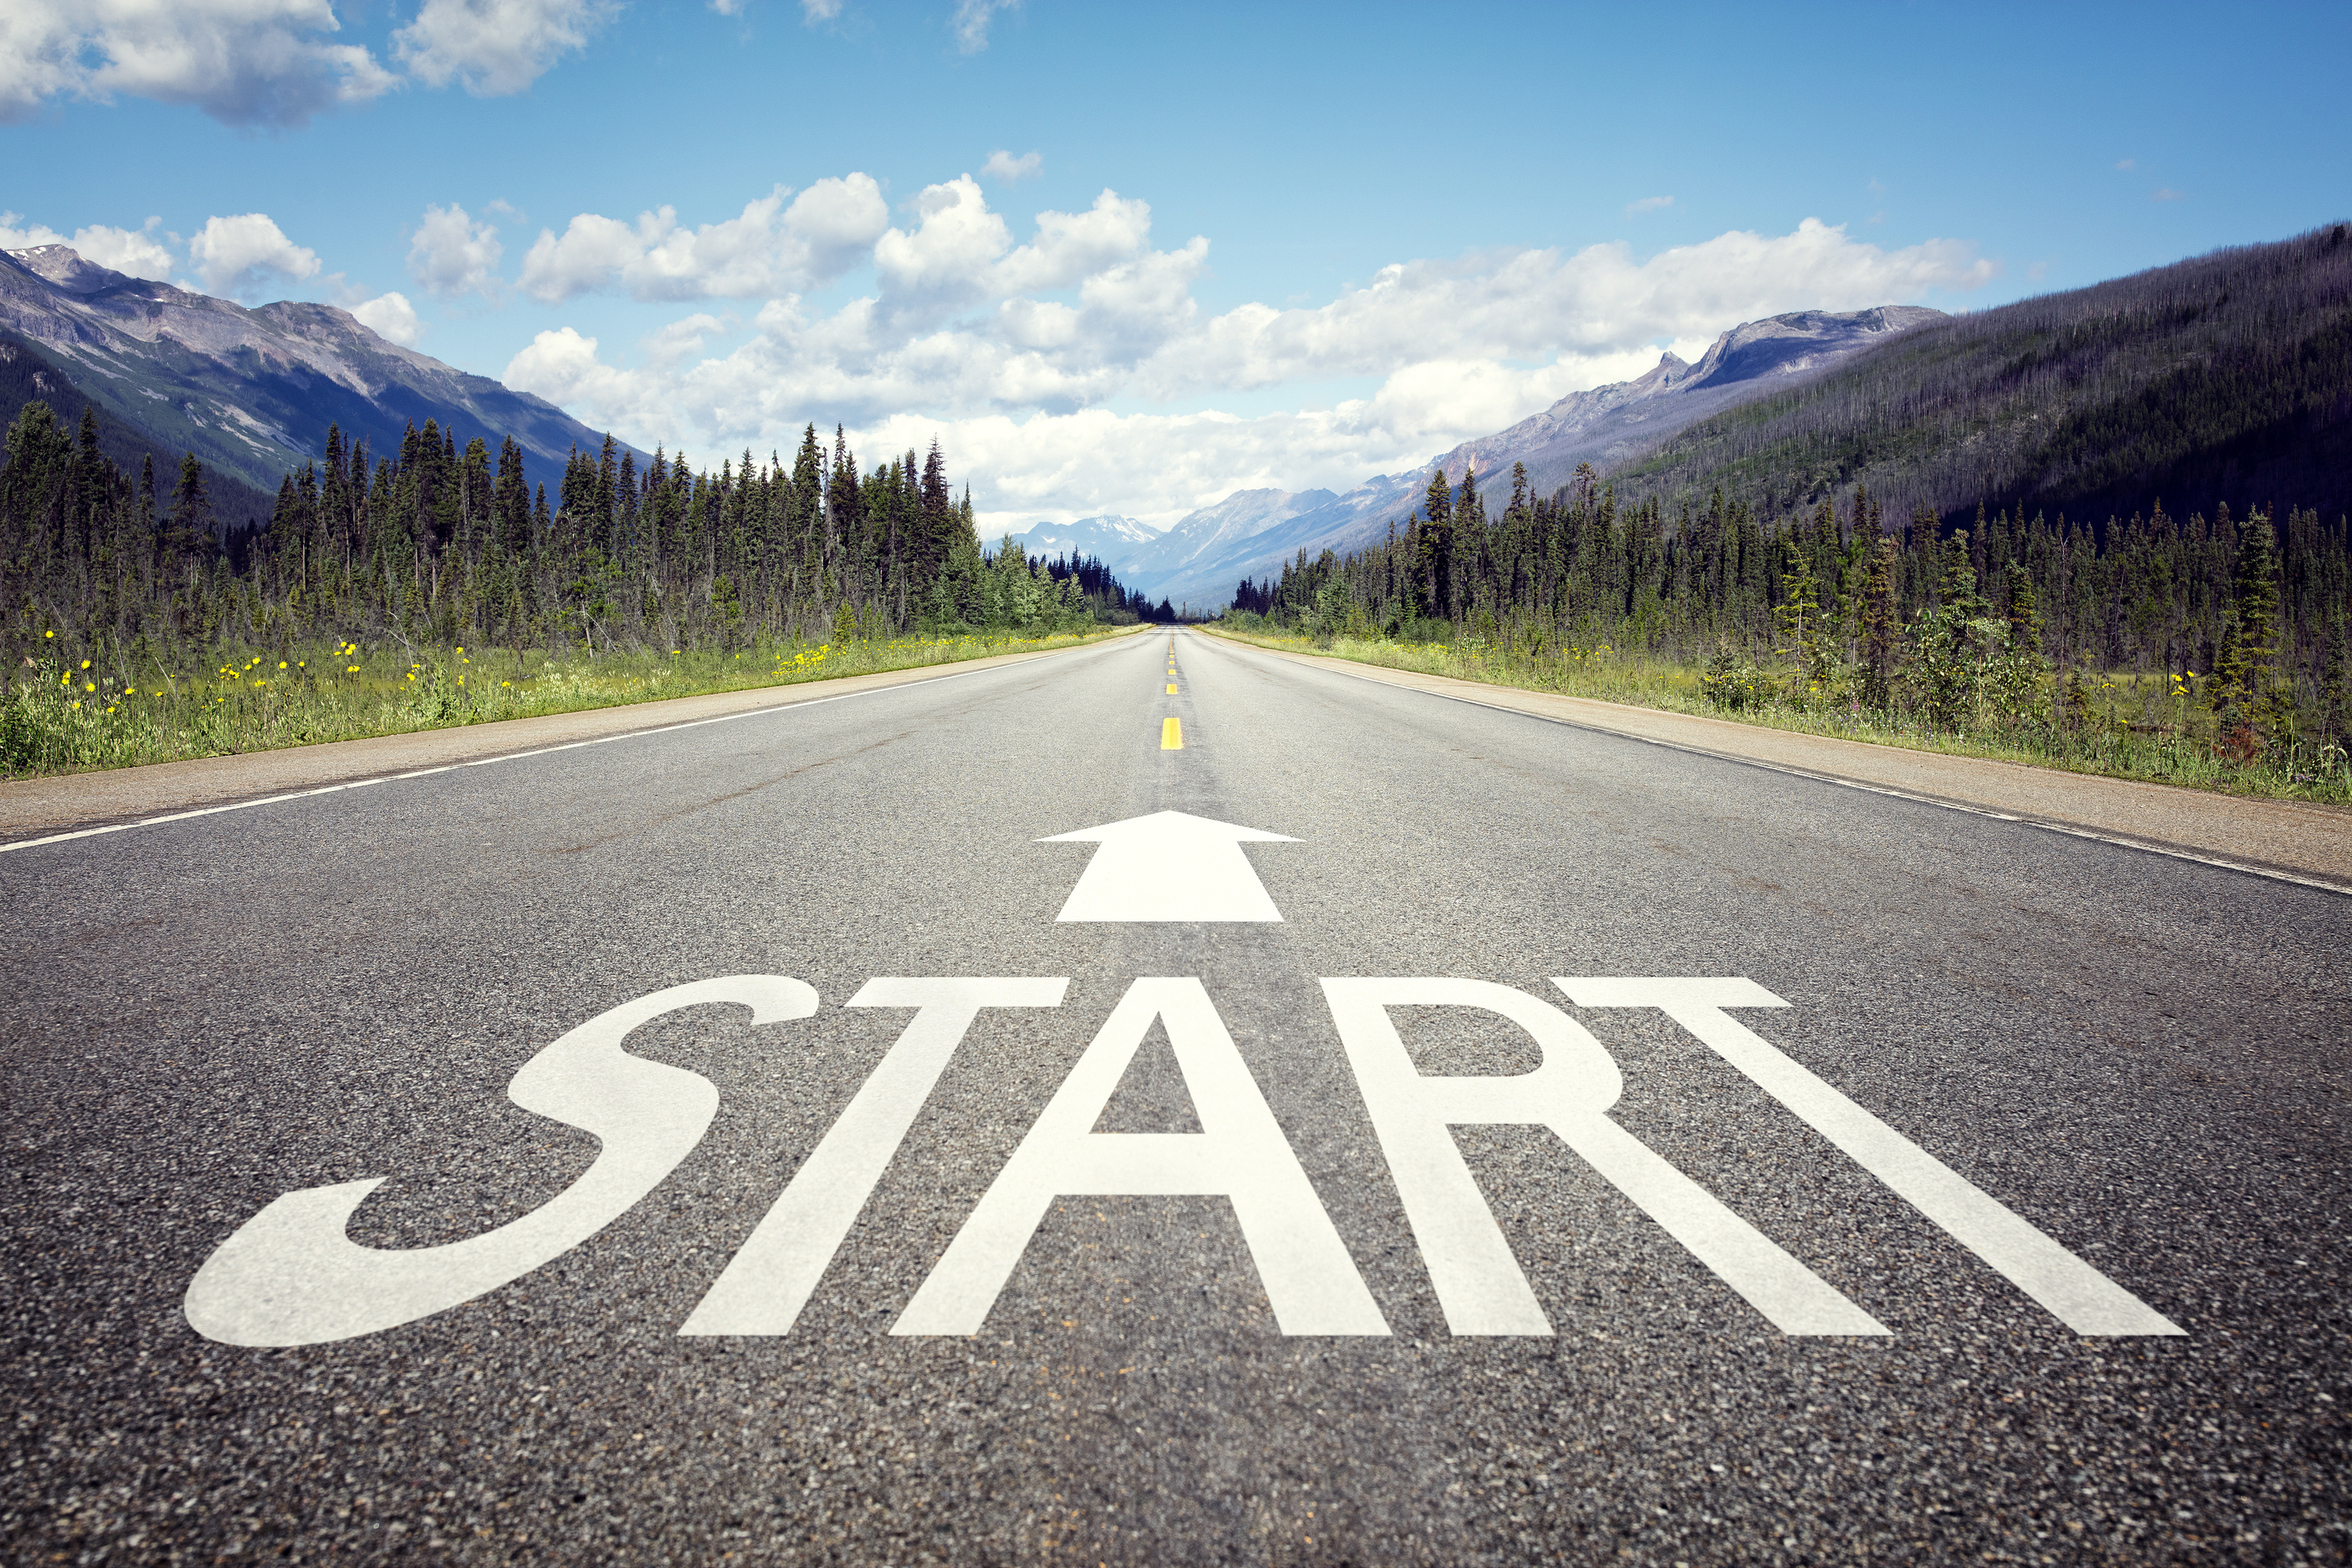 Start line on the highway concept for business planning, strategy and challenge or career path, oppo